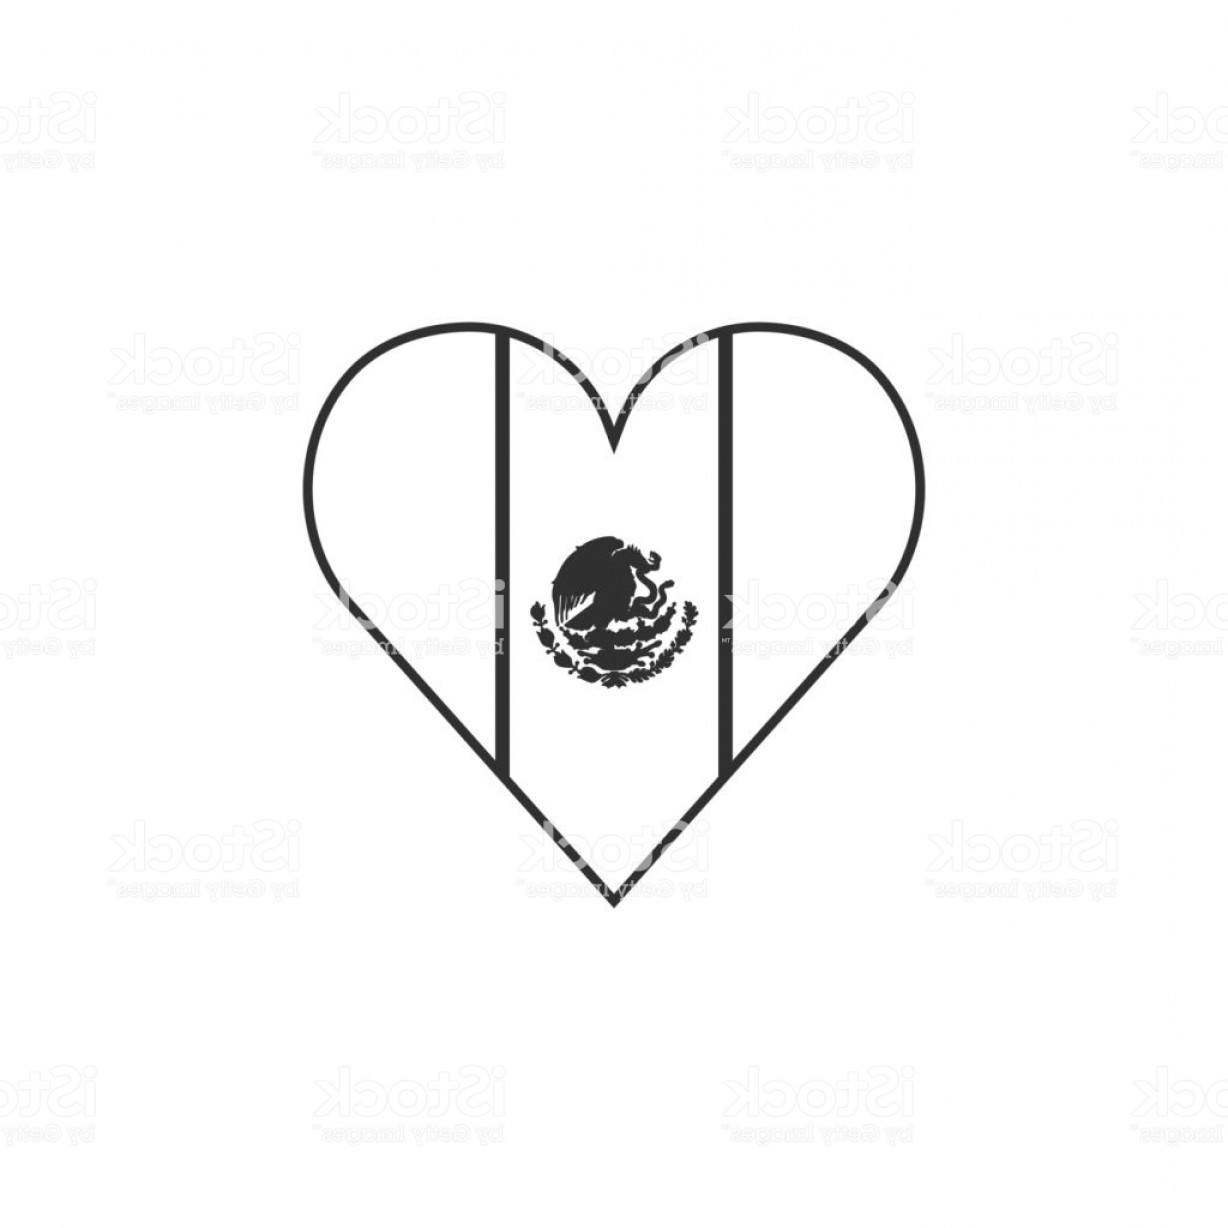 Slanted Heart Vector: Mexico Flag Icon In A Heart Shape In Black Outline Flat Design Gm